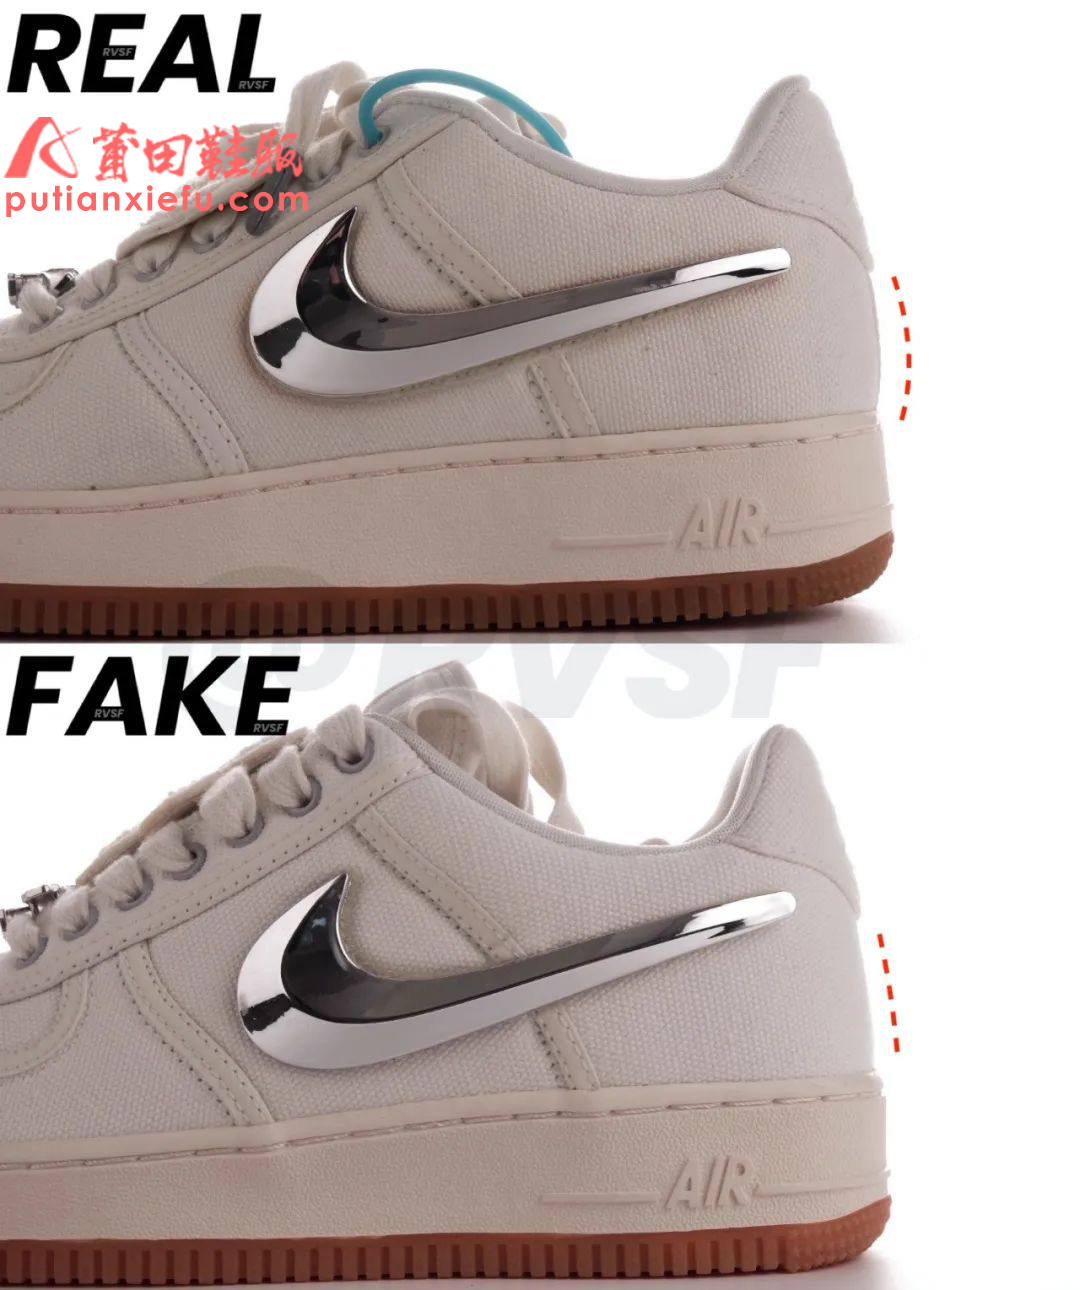 Travis Scott x Air Force 1米白换勾真假对比